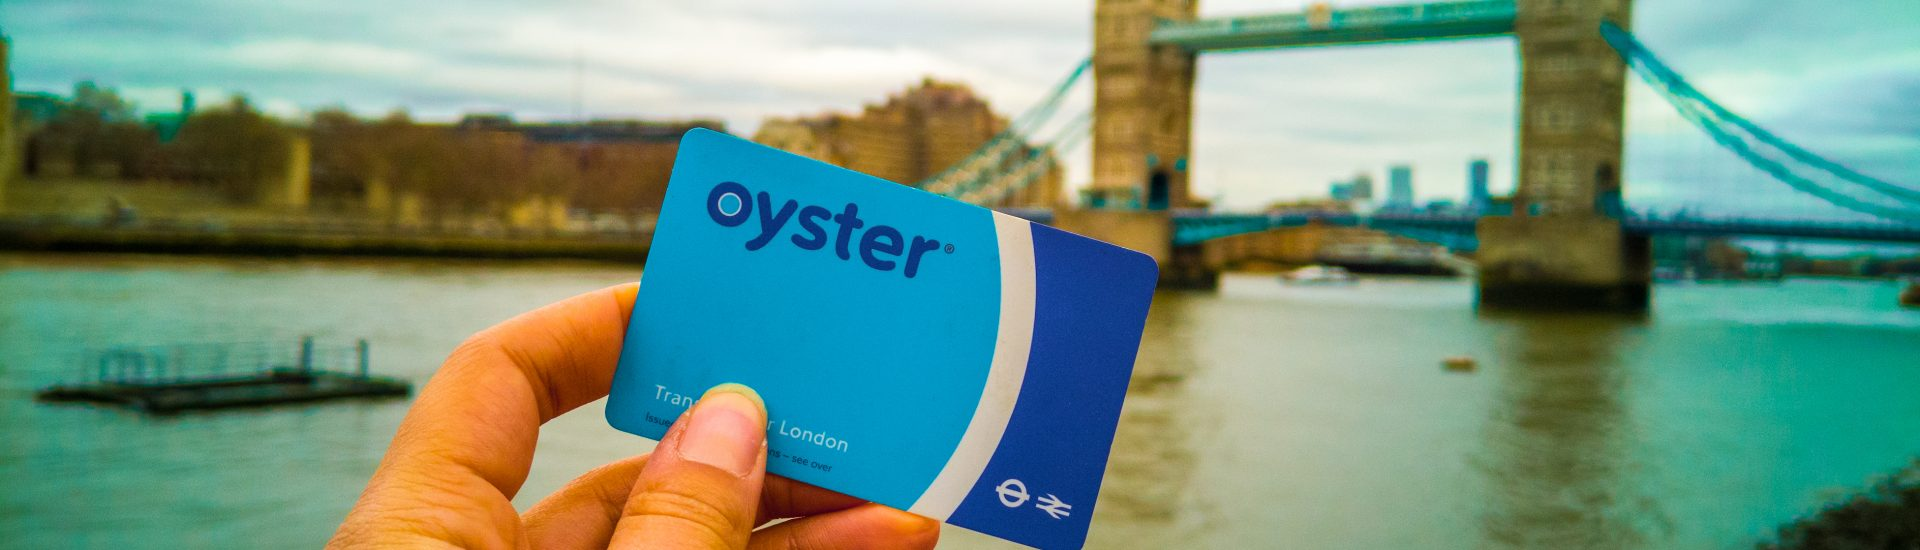 Oyster-Card